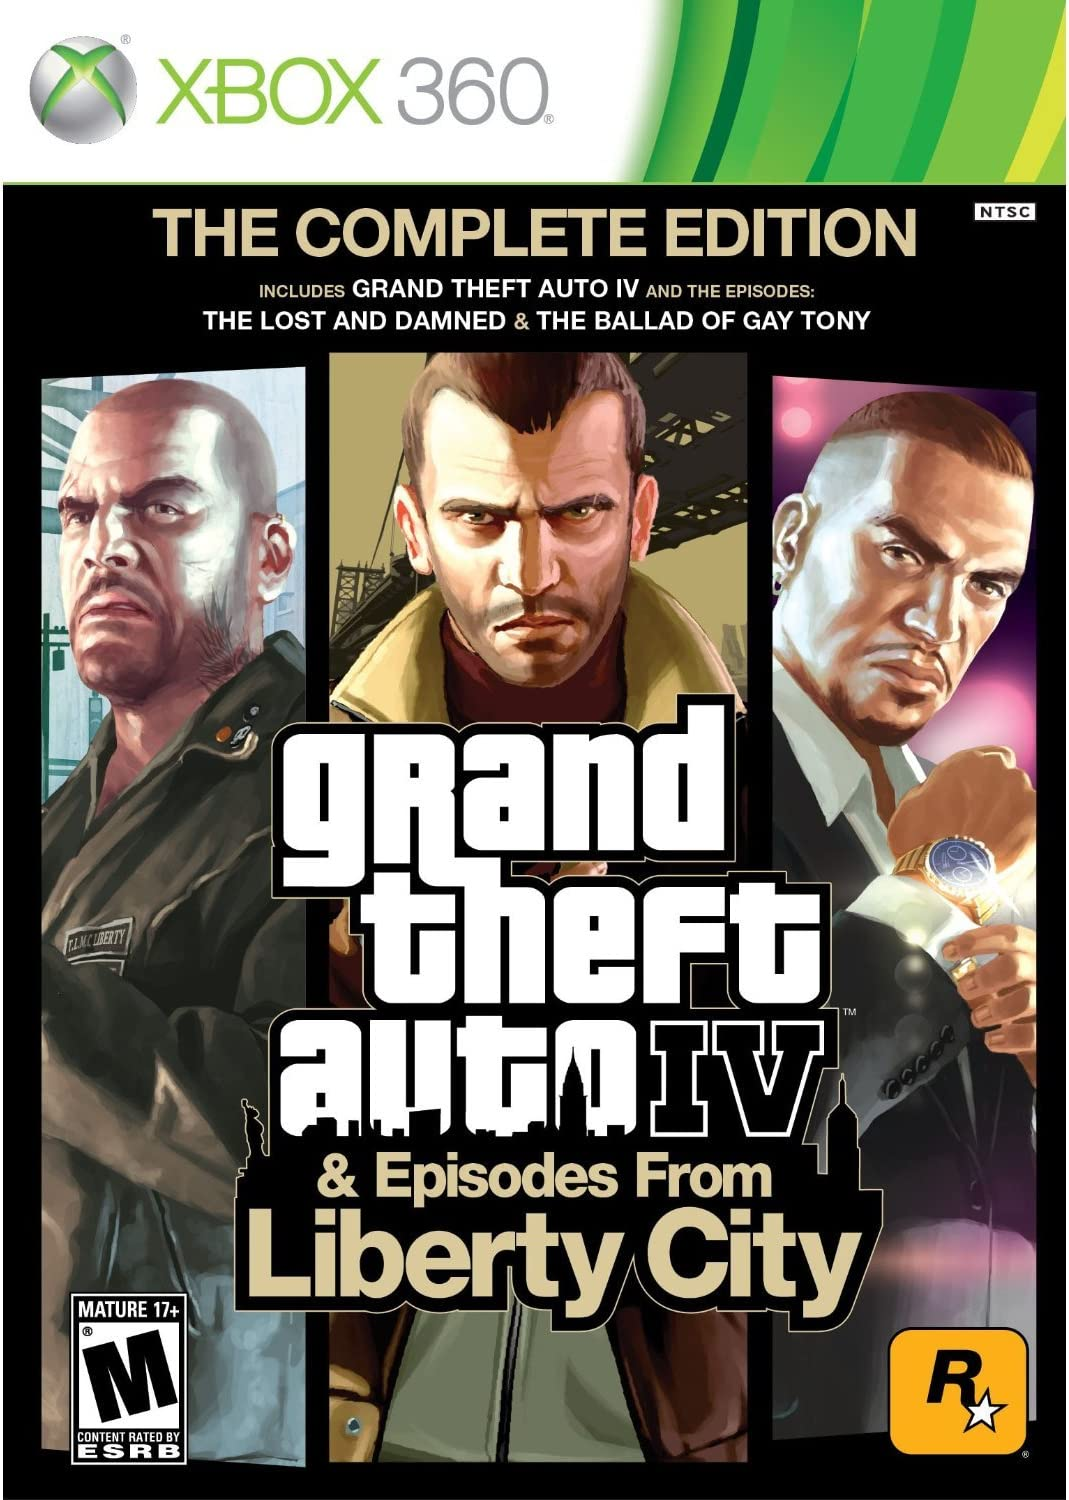 dating i Grand Theft Auto IV